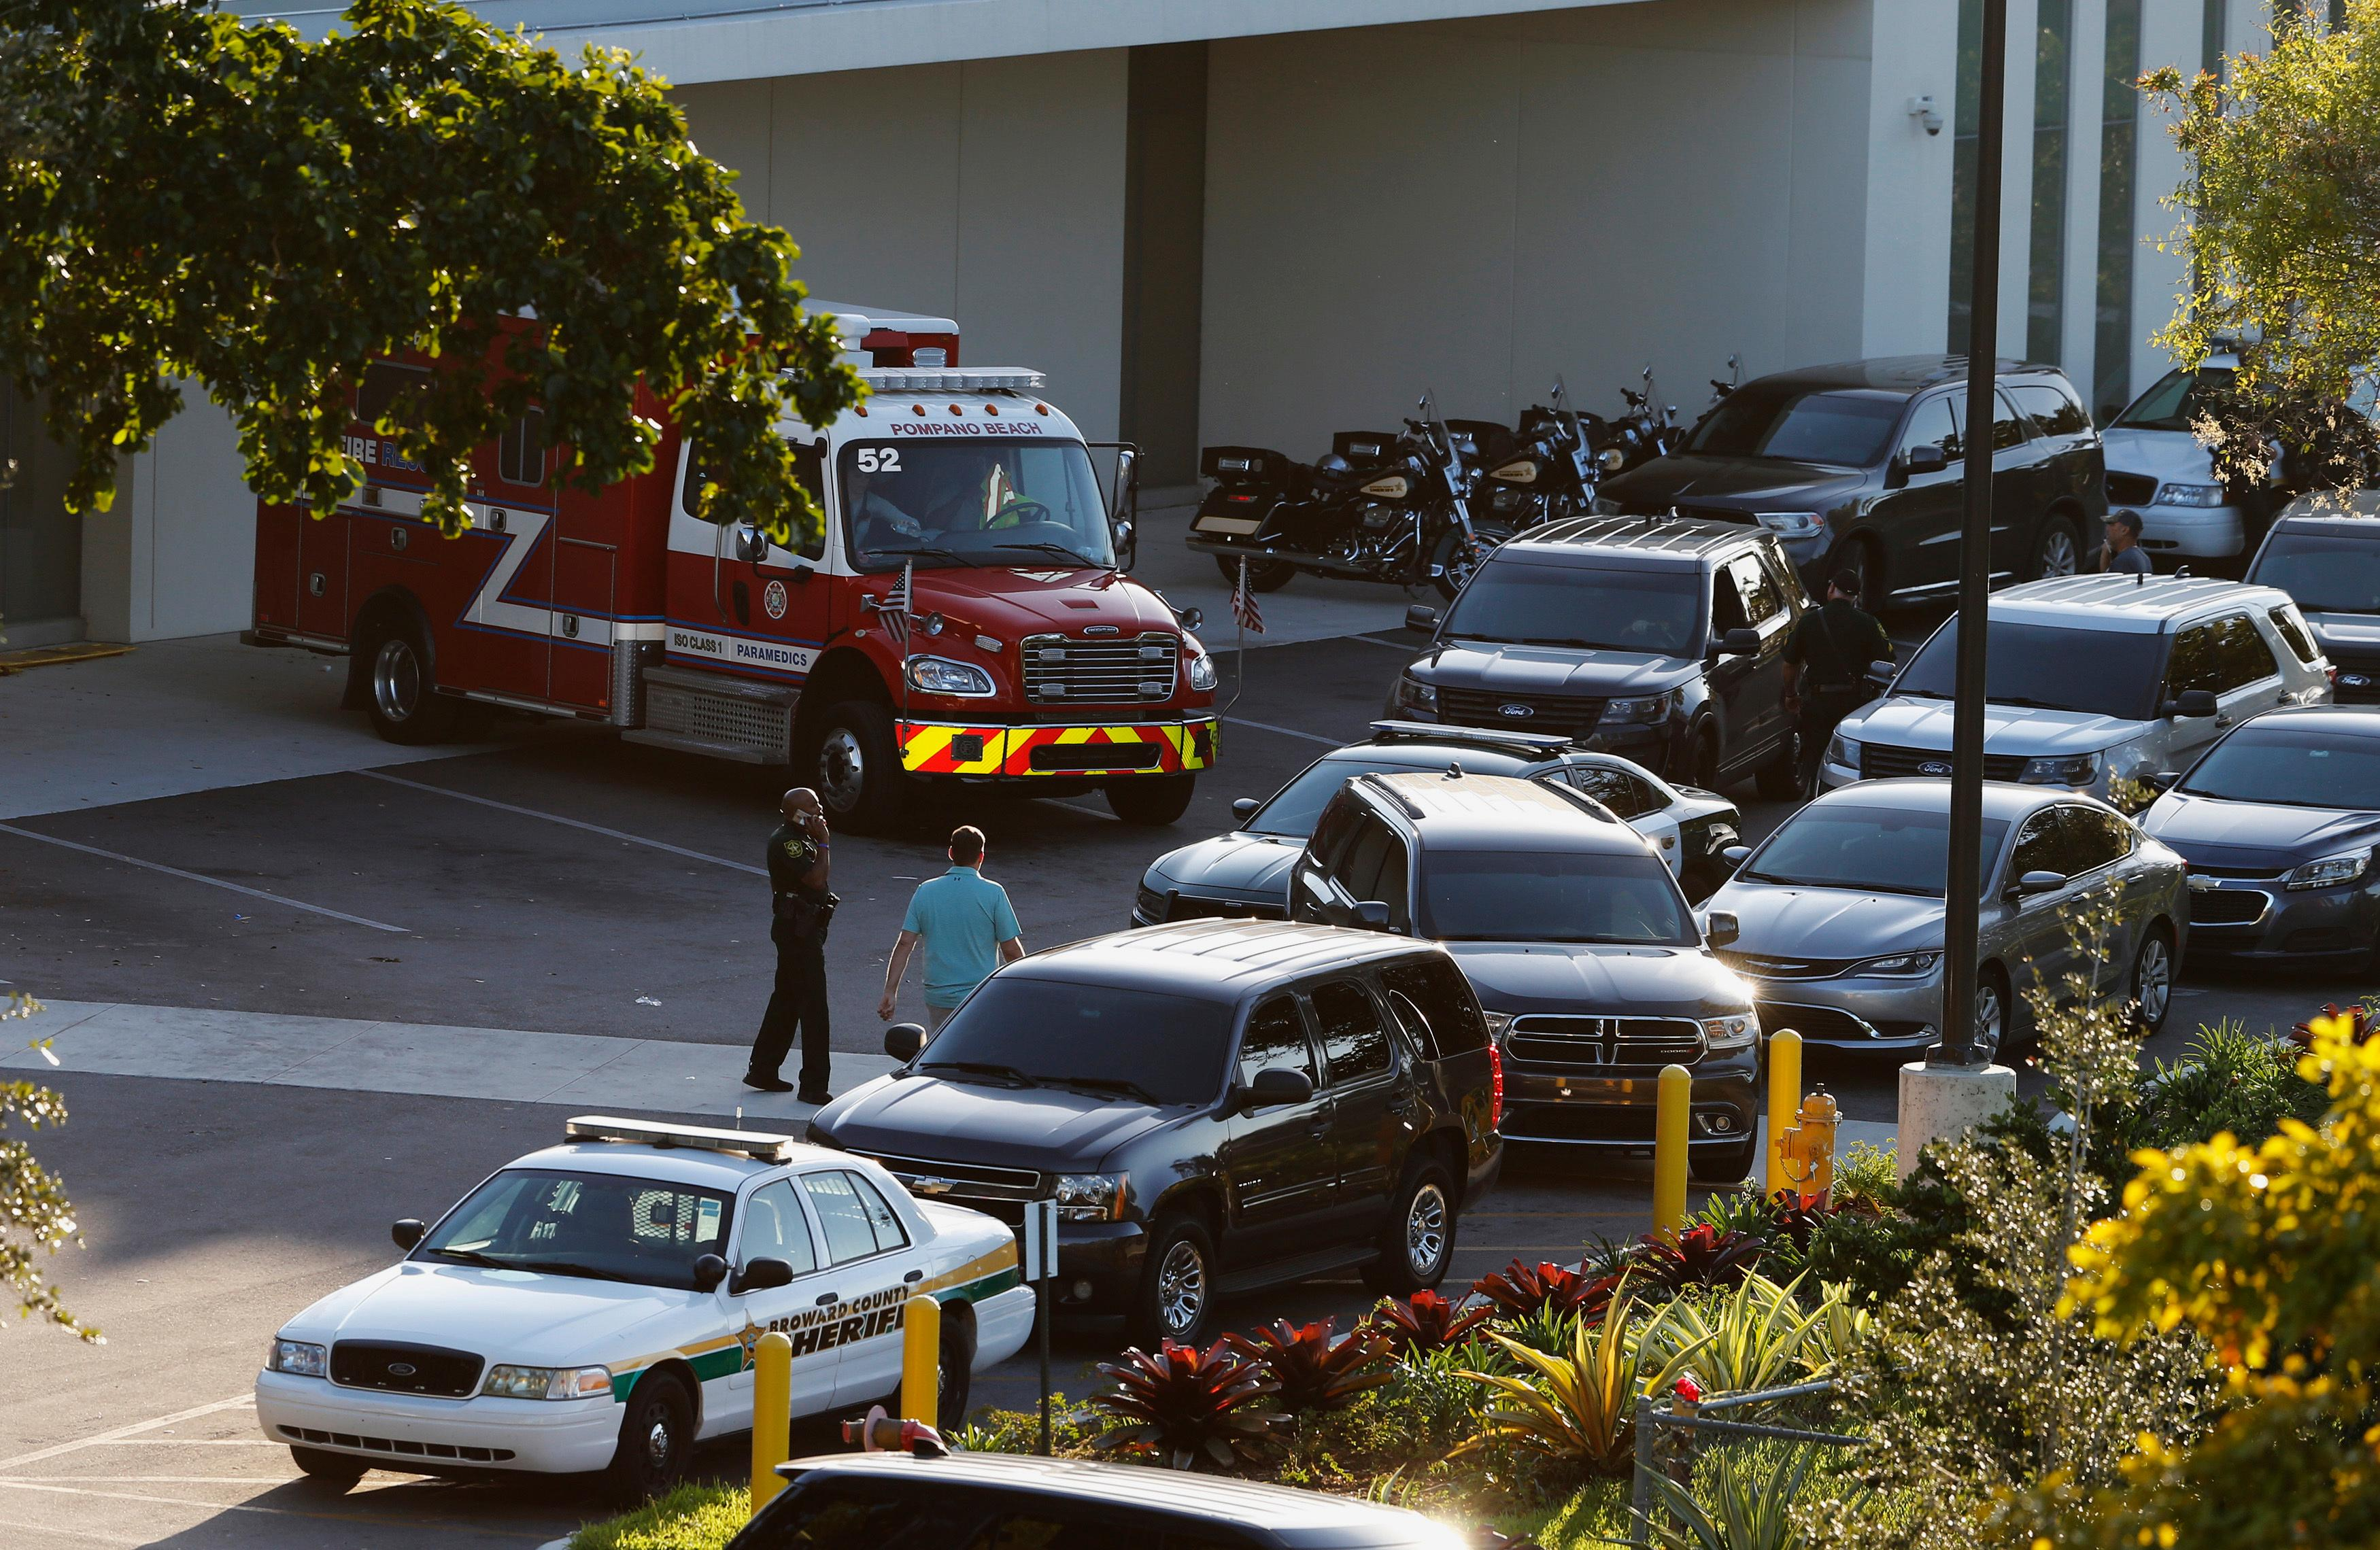 Police and rescue vehicles are shown outside Broward Health North hospital, Wednesday, Feb. 14, 2018, in Deerfield Beach, Fla. A shooter opened fire at a Florida high school Wednesday, killing people, sending students running out into the streets and SWAT team members swarming in before authorities took the shooter into custody. (AP Photo/Joe Skipper)